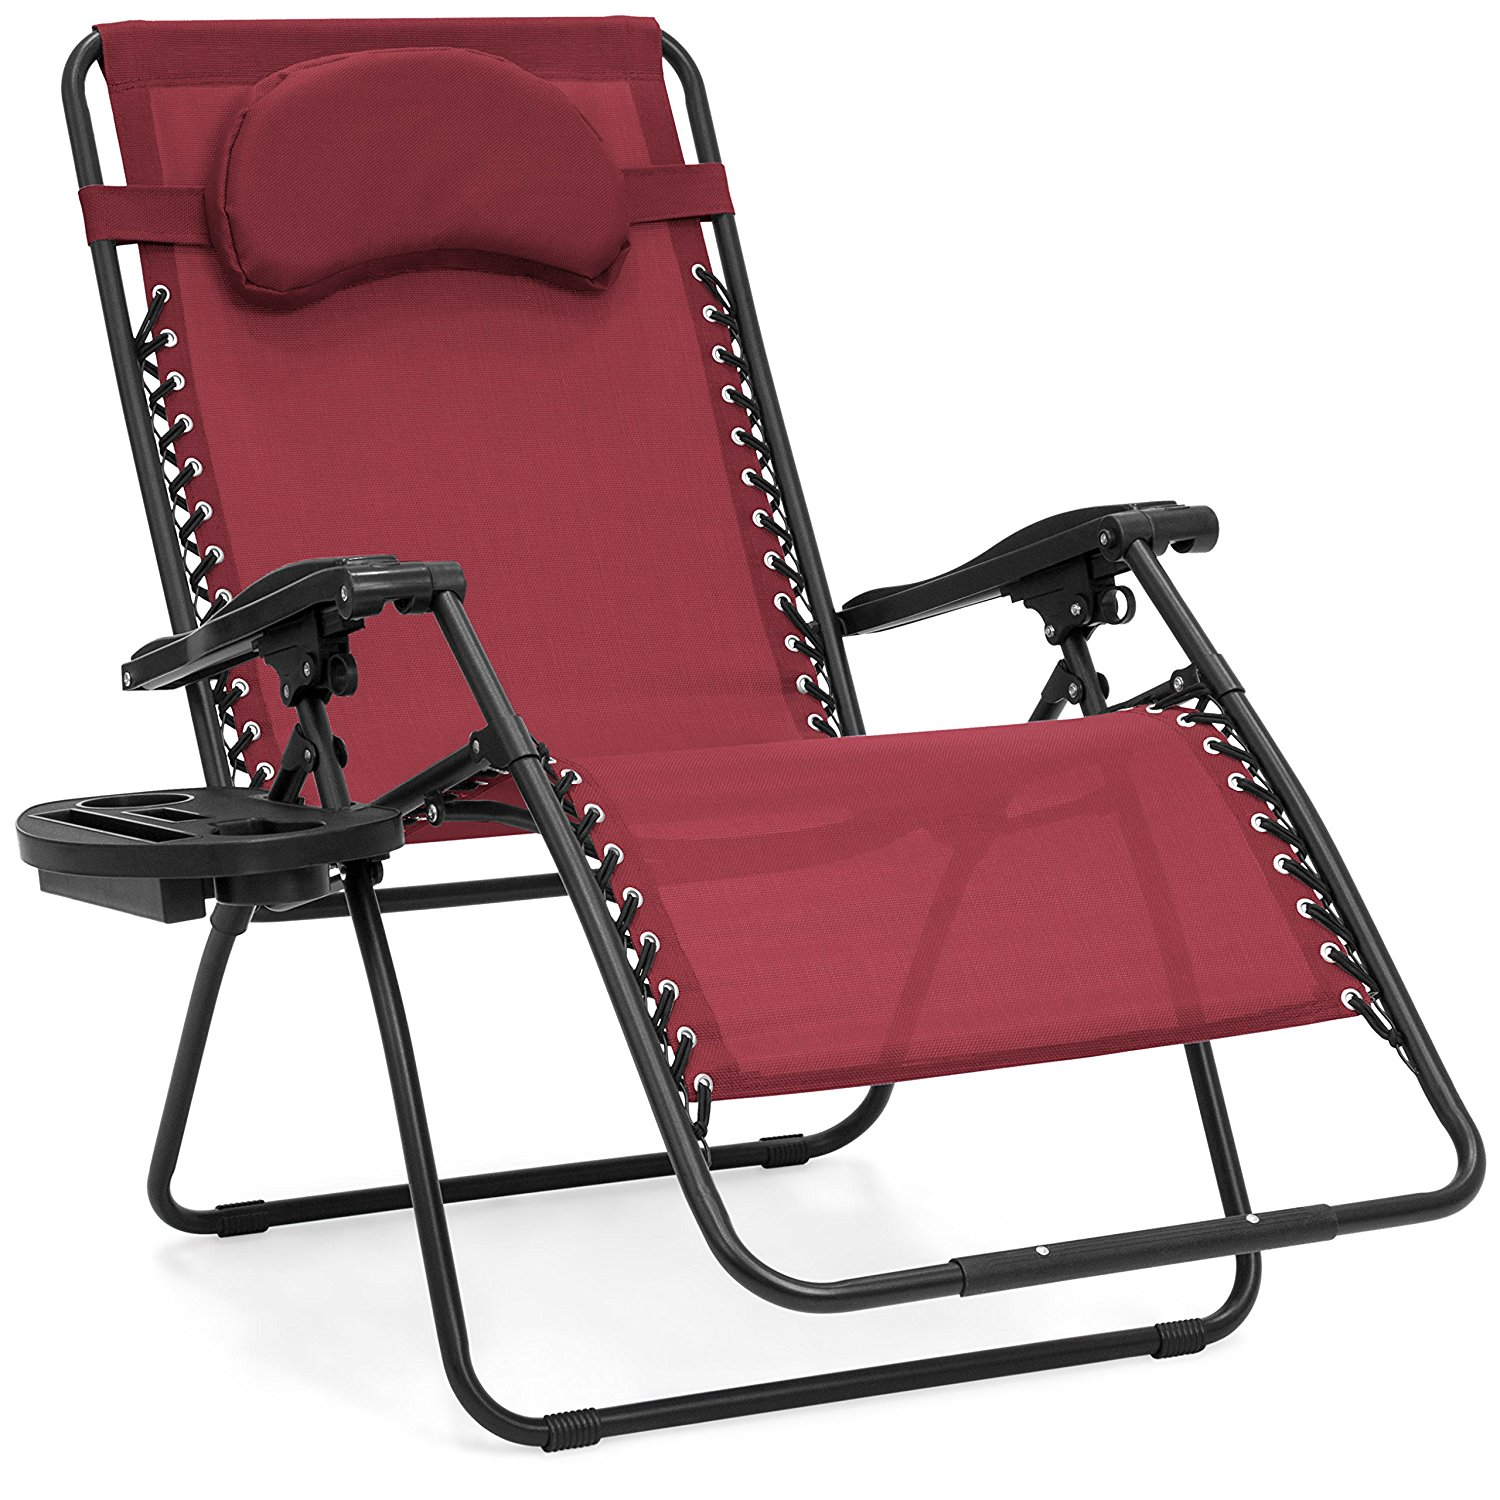 Best Choice Products Oversized Zero Gravity Outdoor Reclining Lounge Patio Chair w/Cup Holder - Burgundy